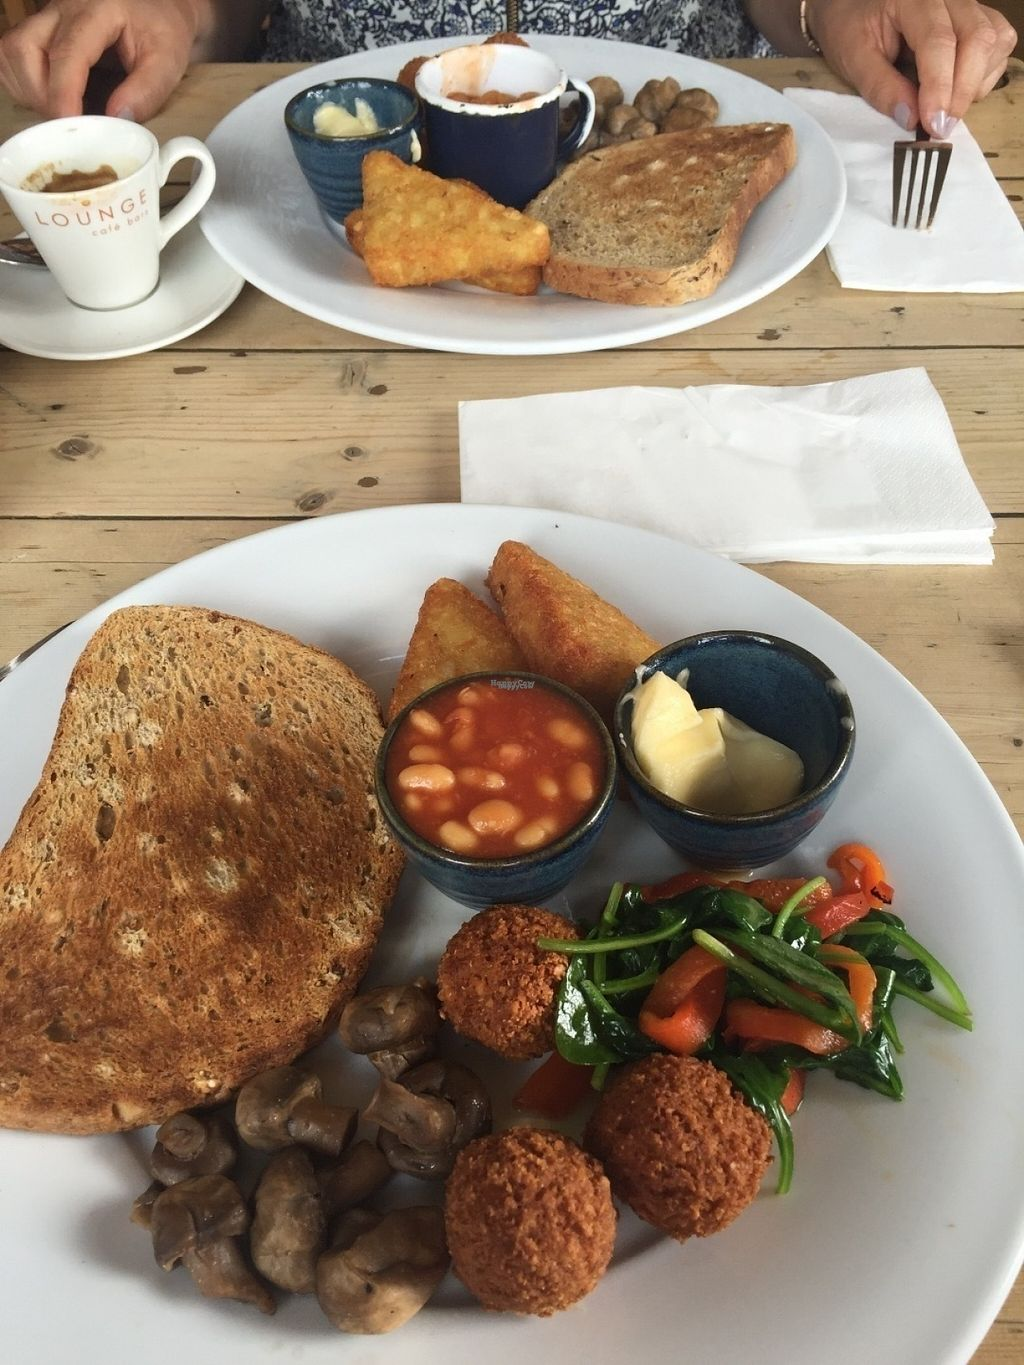 """Photo of Loungers - Santo Lounge  by <a href=""""/members/profile/Tiffysian"""">Tiffysian</a> <br/>Vegan breakfast at Santo Lounge <br/> August 18, 2016  - <a href='/contact/abuse/image/40426/169879'>Report</a>"""